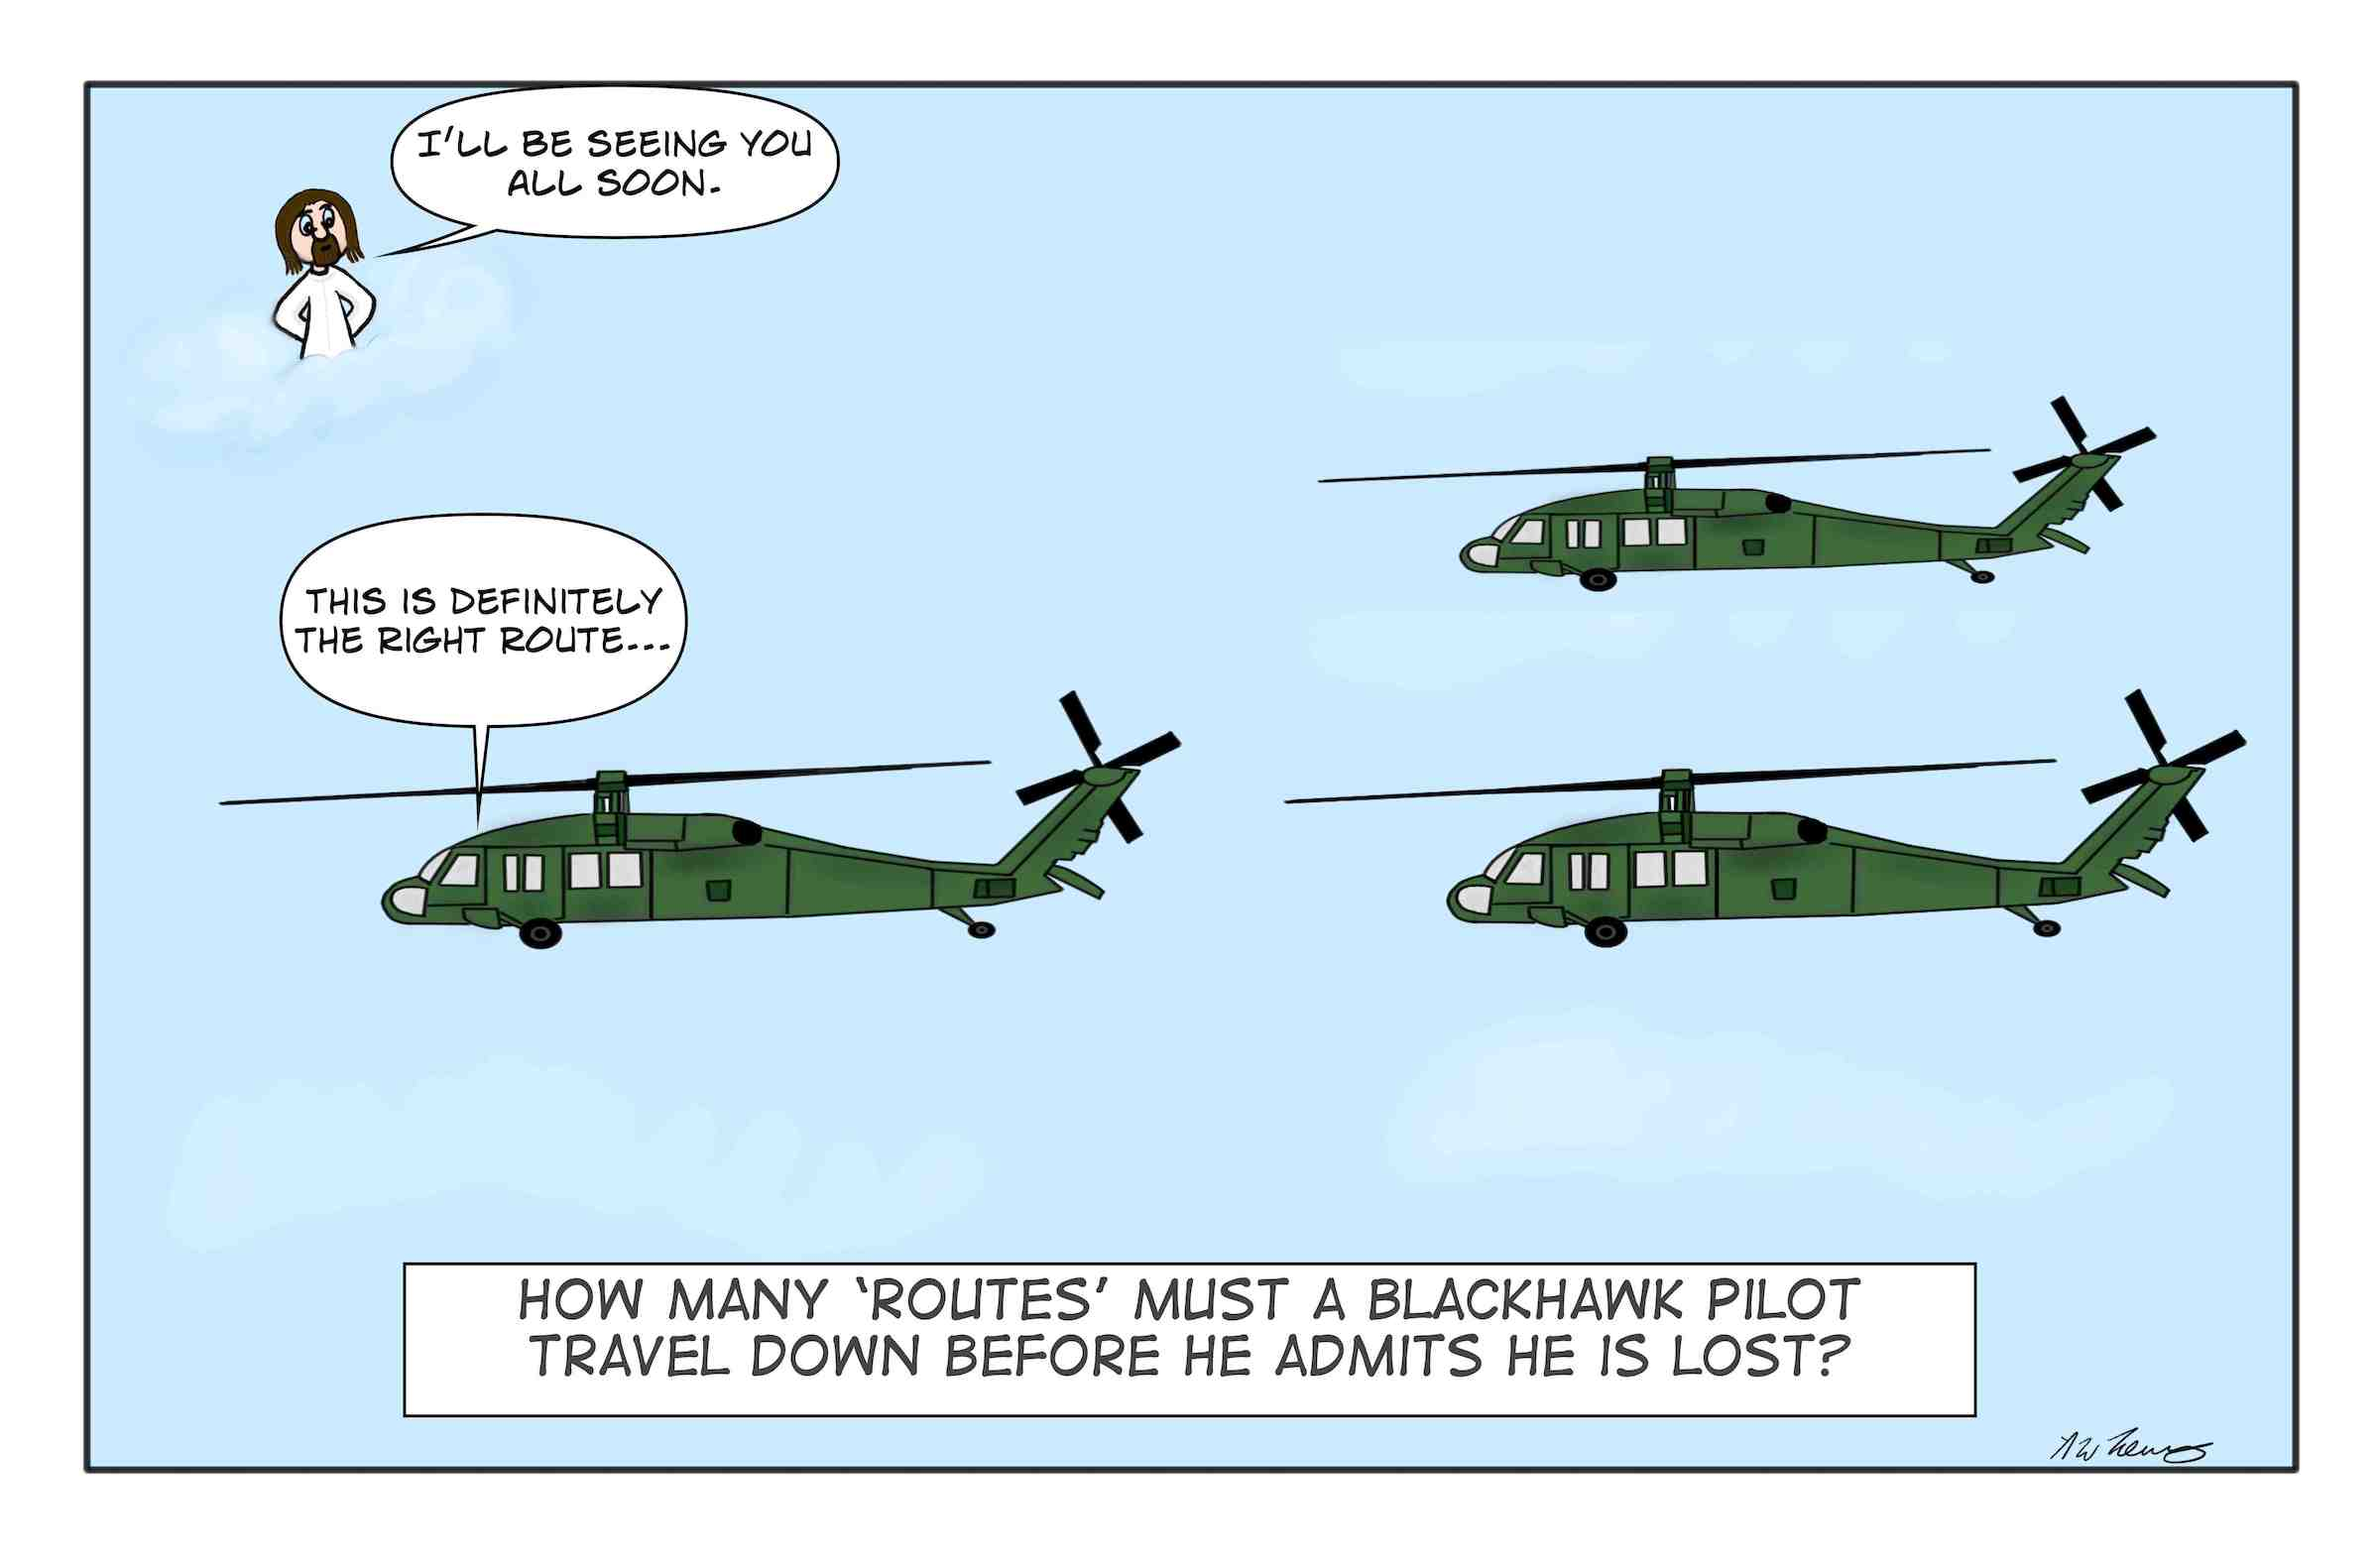 a formation of Army Blackhawks and their pilots are lost in flight.